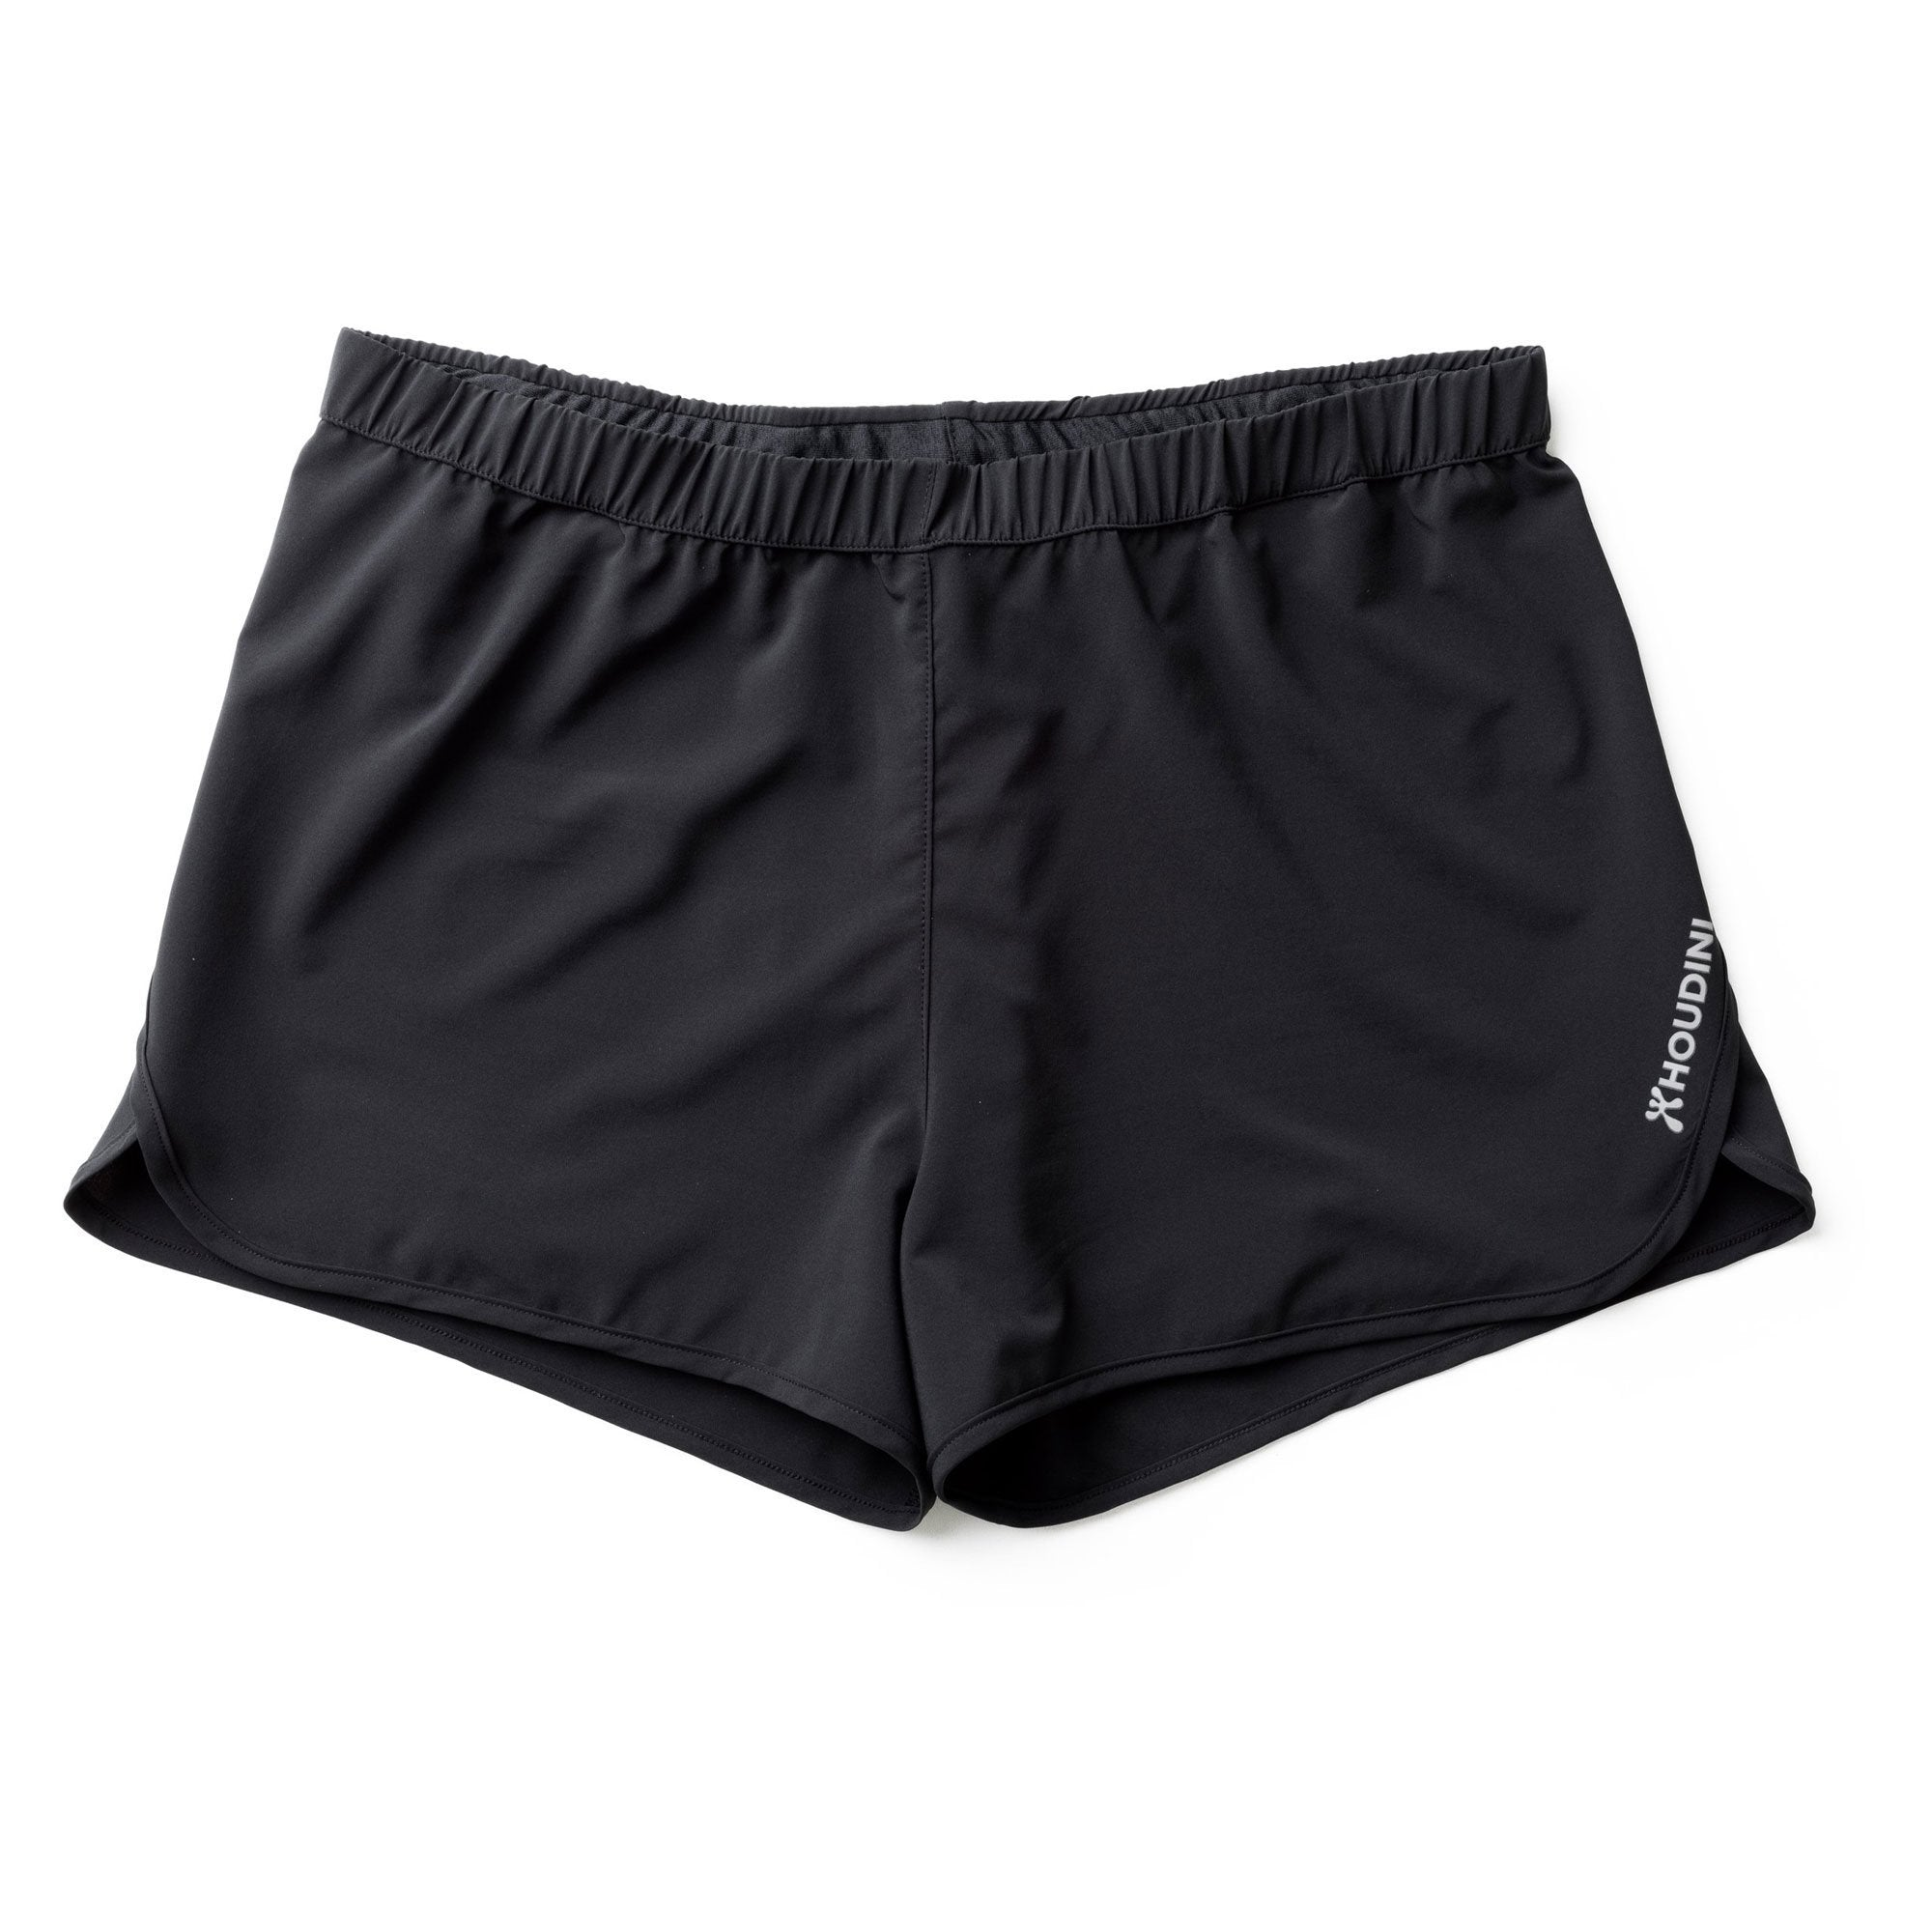 Light Shorts - True Black - Dam - Vindpinad